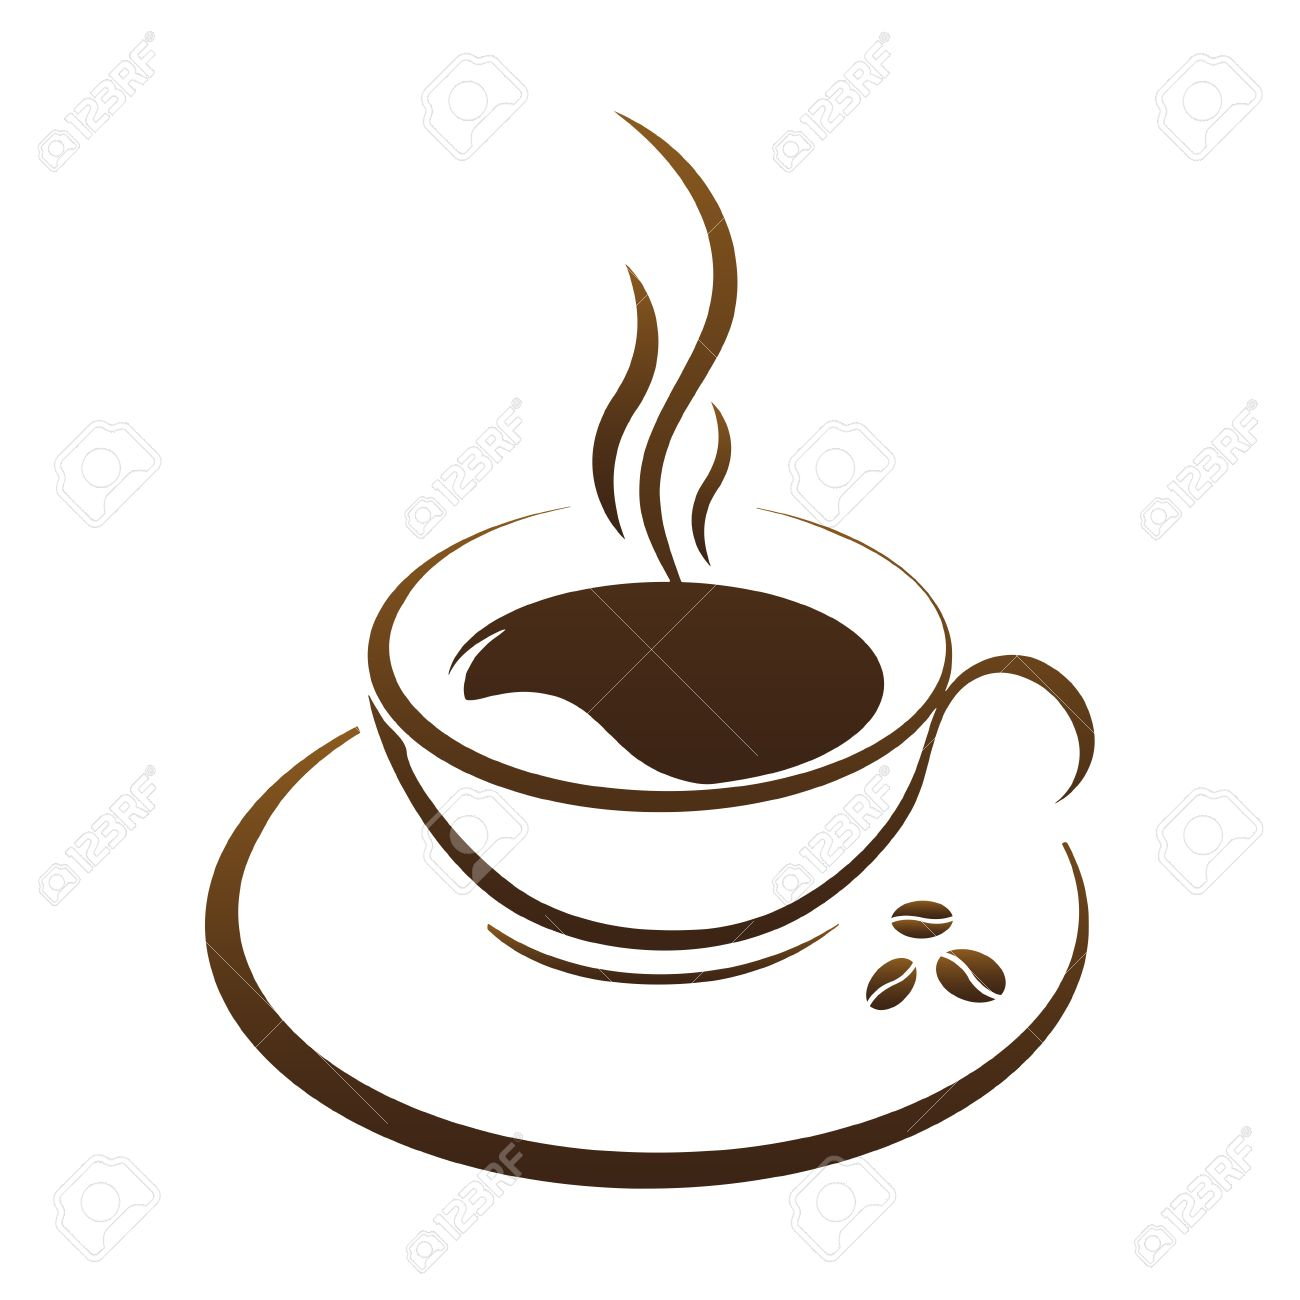 Coffee cup vector free - Hot Coffee Cup Vector On A White Background Stock Vector 50221355